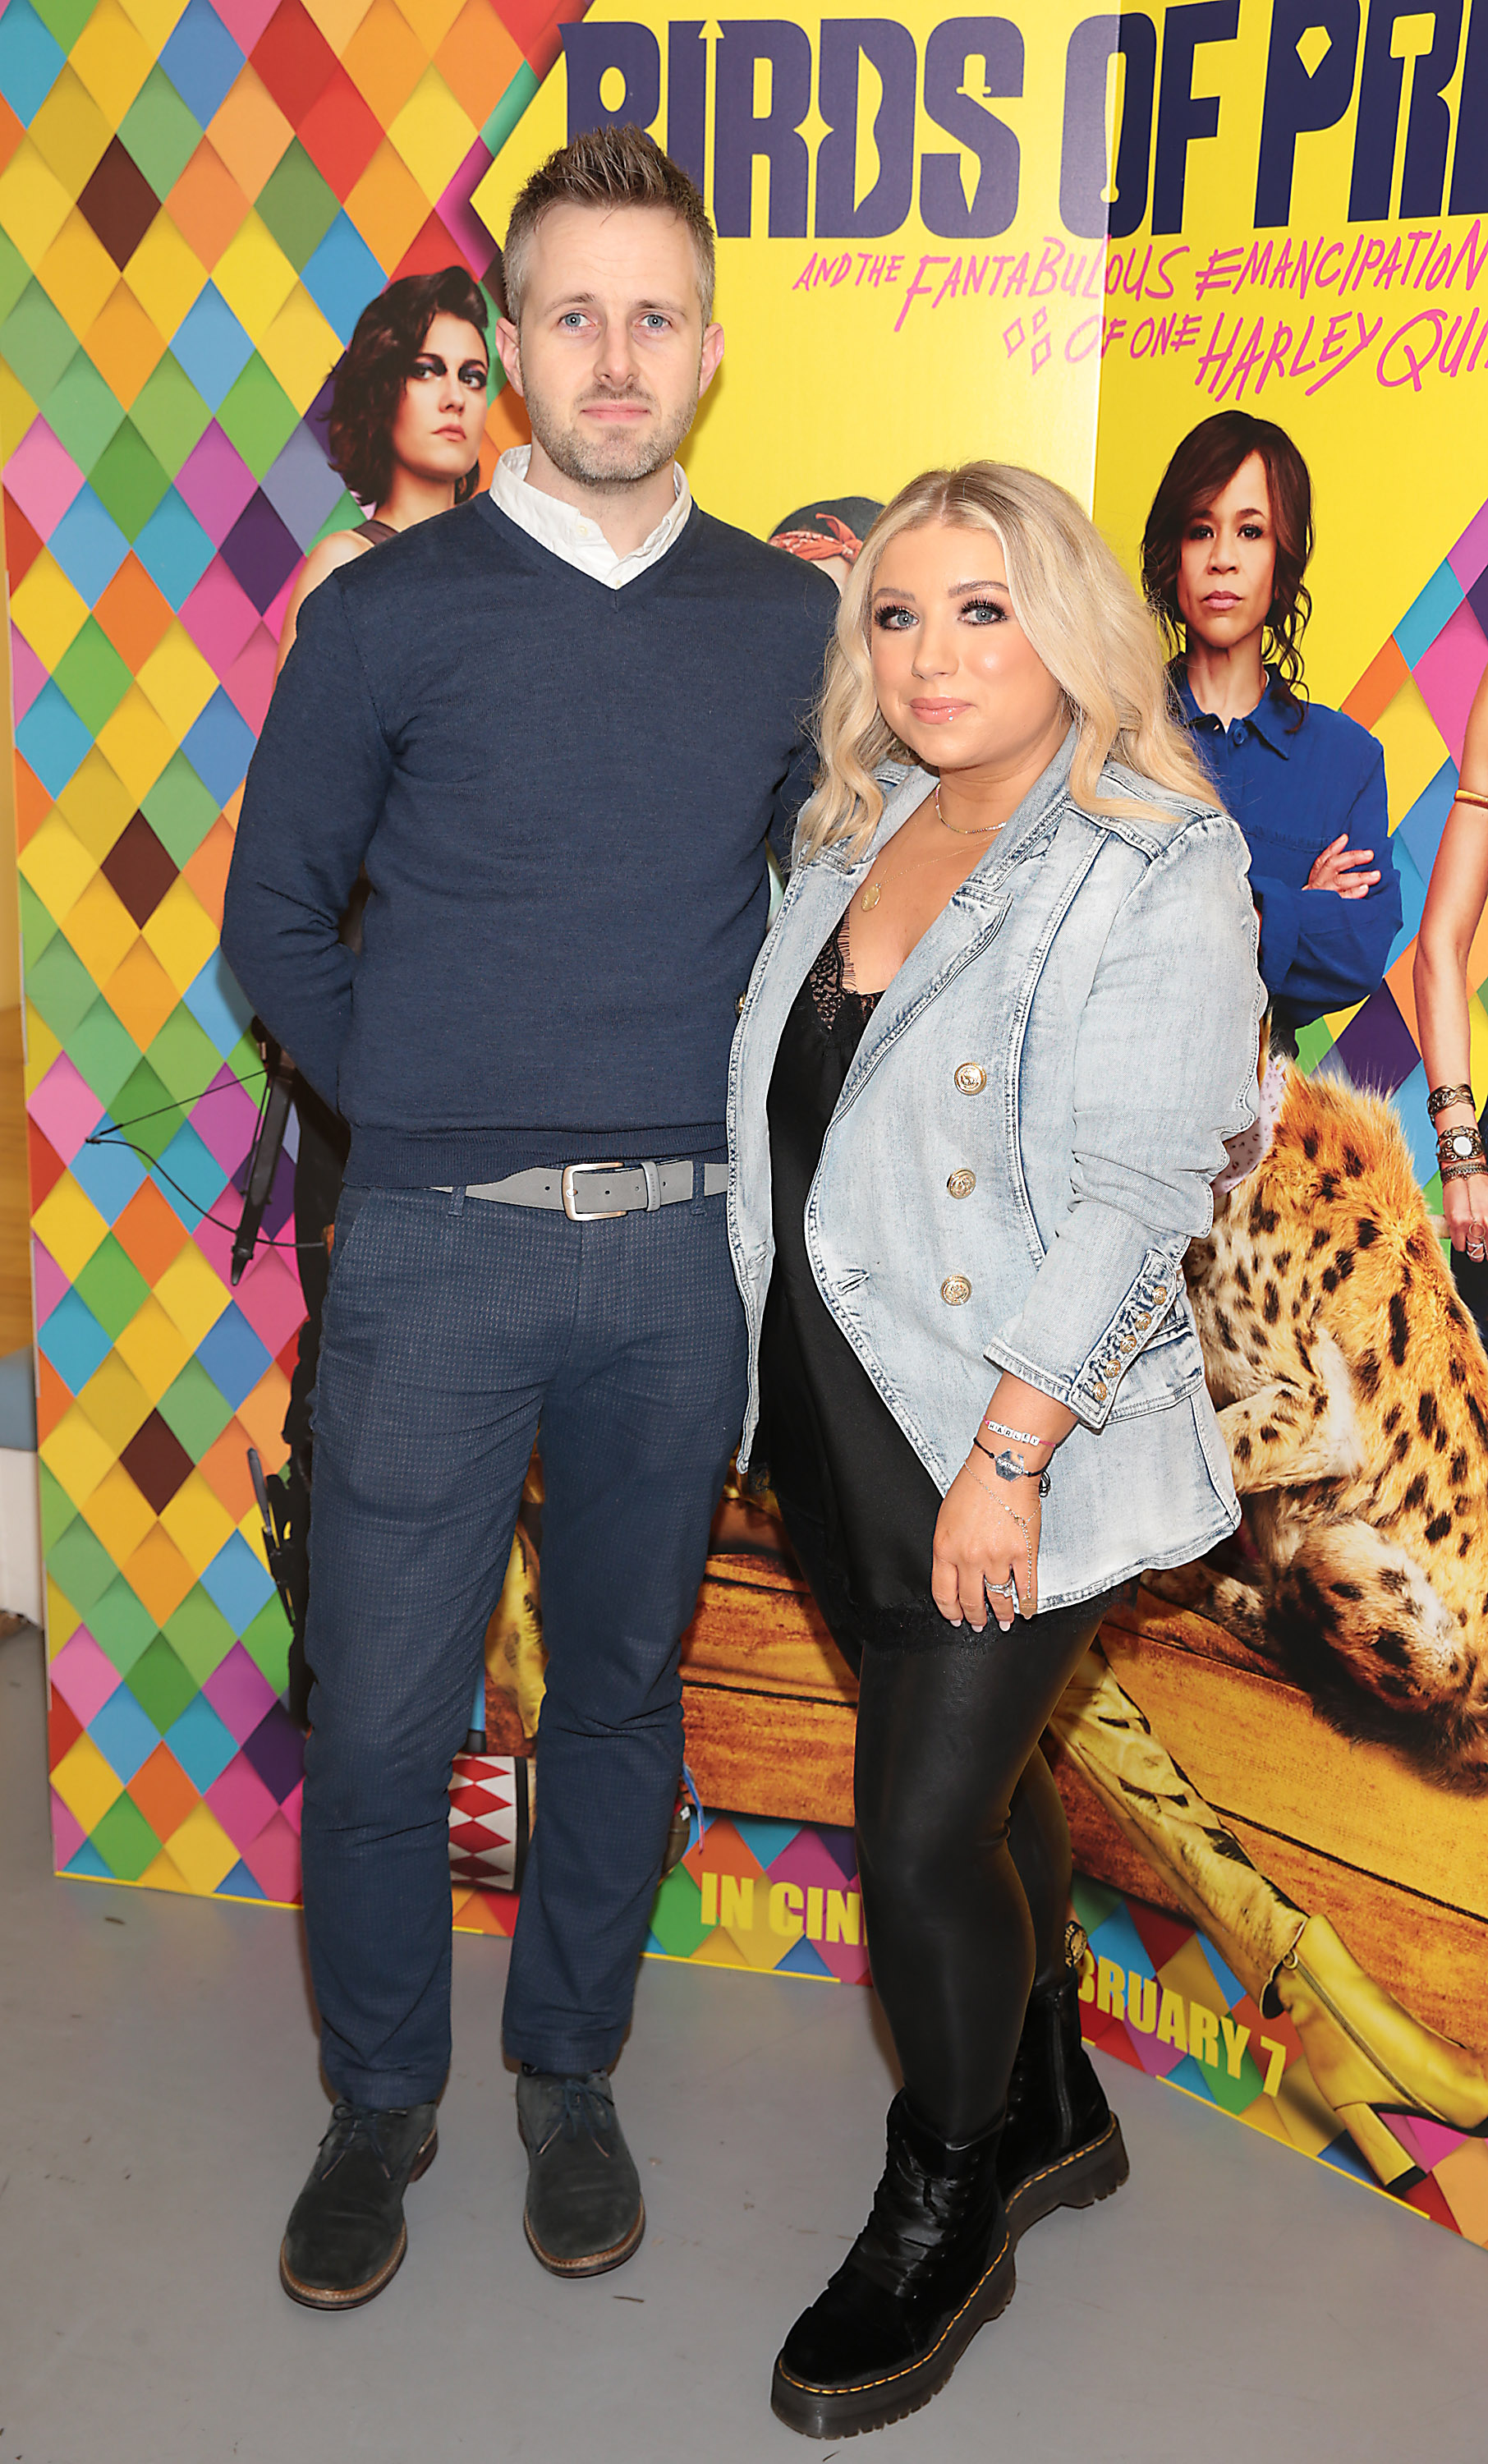 David Conneely and Danielle McCrossan at the special preview screening of Birds of Prey at the Lighthouse Cinema, Dublin. Pic: Brian McEvoy